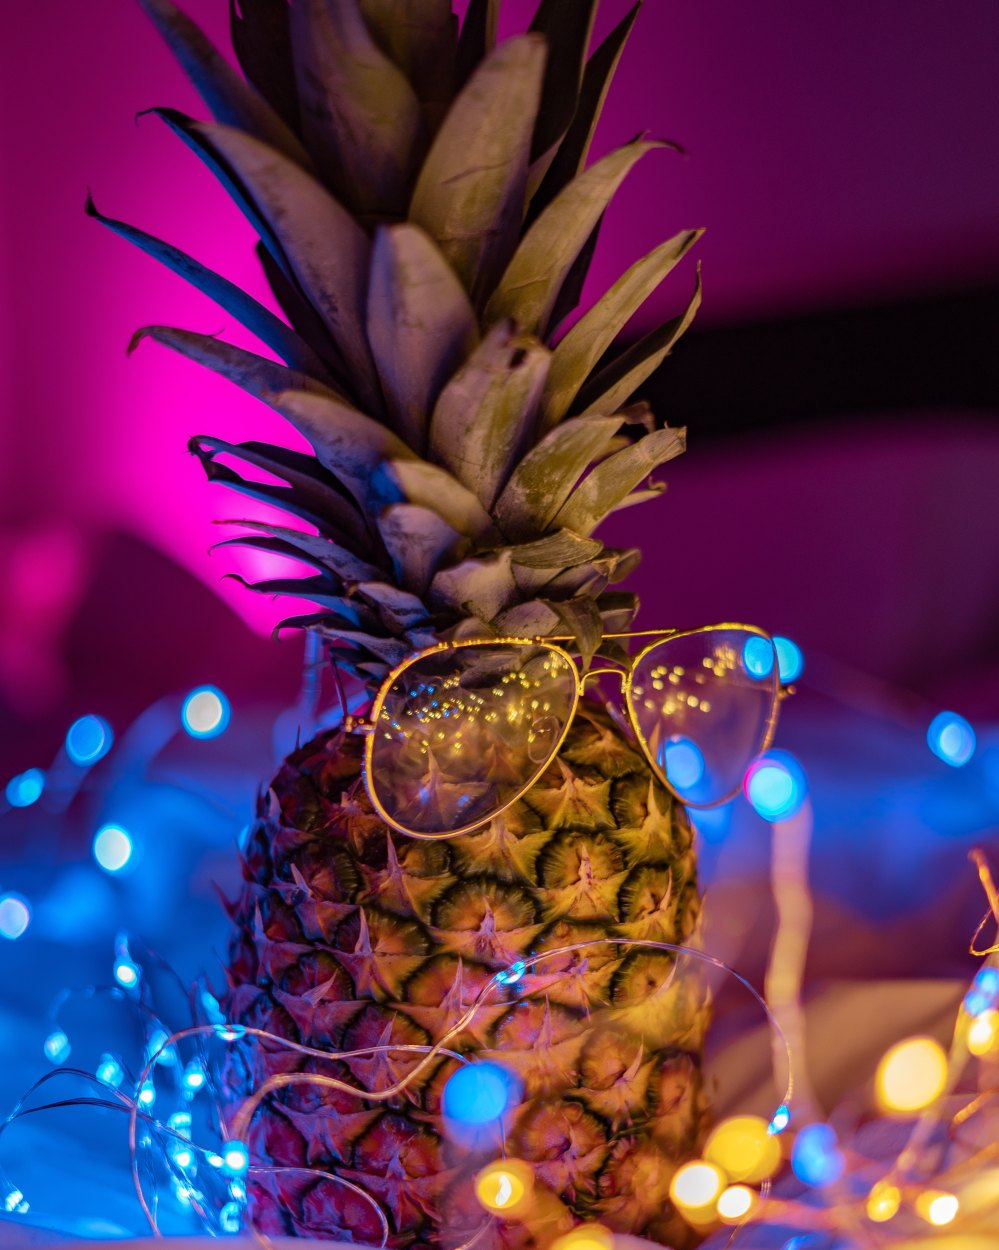 pineapple-supply-co-652277-unsplash.jpg